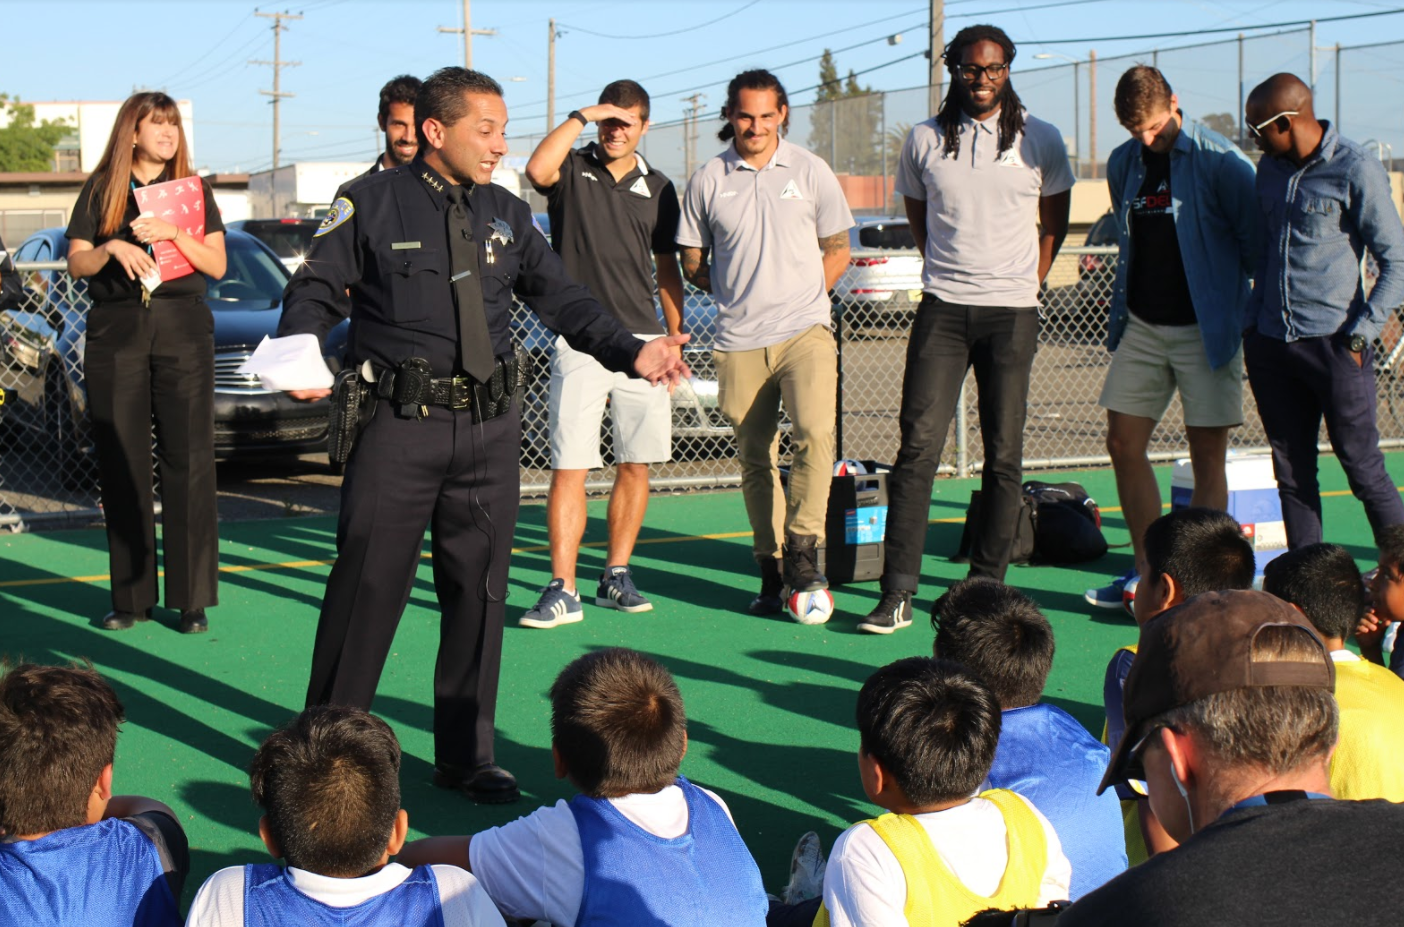 BART Police Chief Carlos Rojas visits with Leopards players at a practice